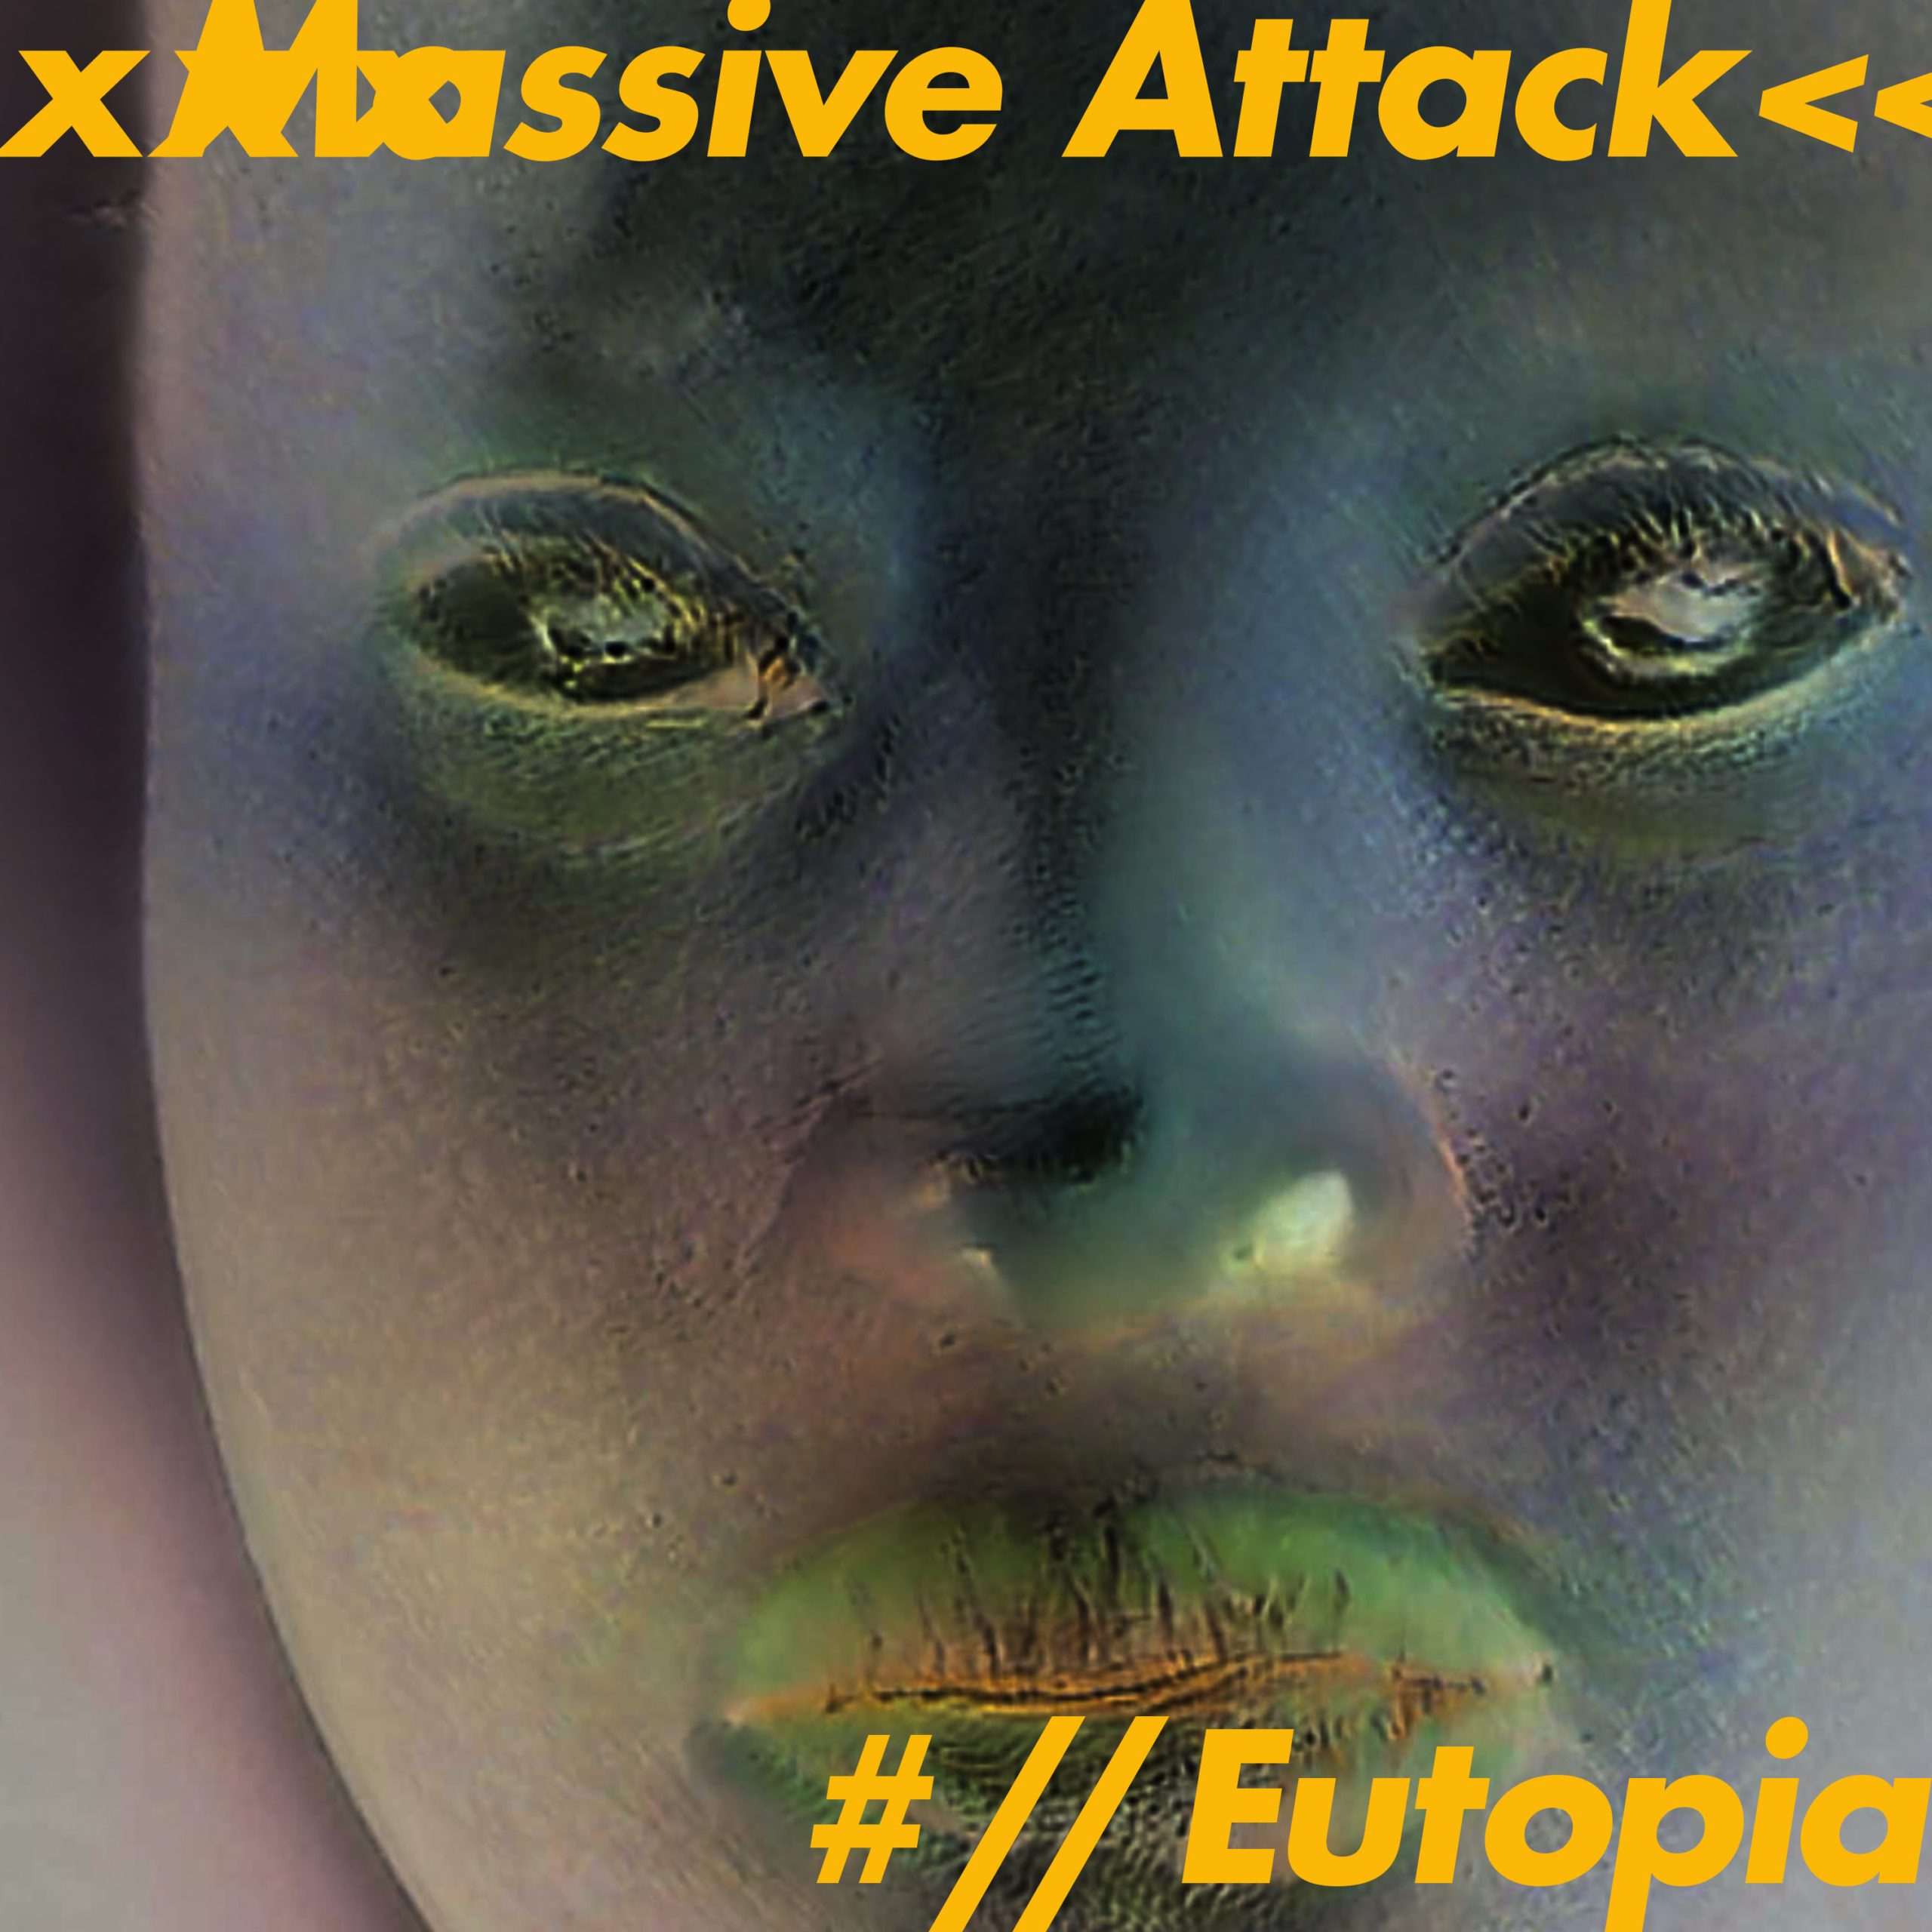 NEWS: Massive Attack Release New Audio-Visual EP: Eutopia feat Saul Williams, Algiers and Young Fathers